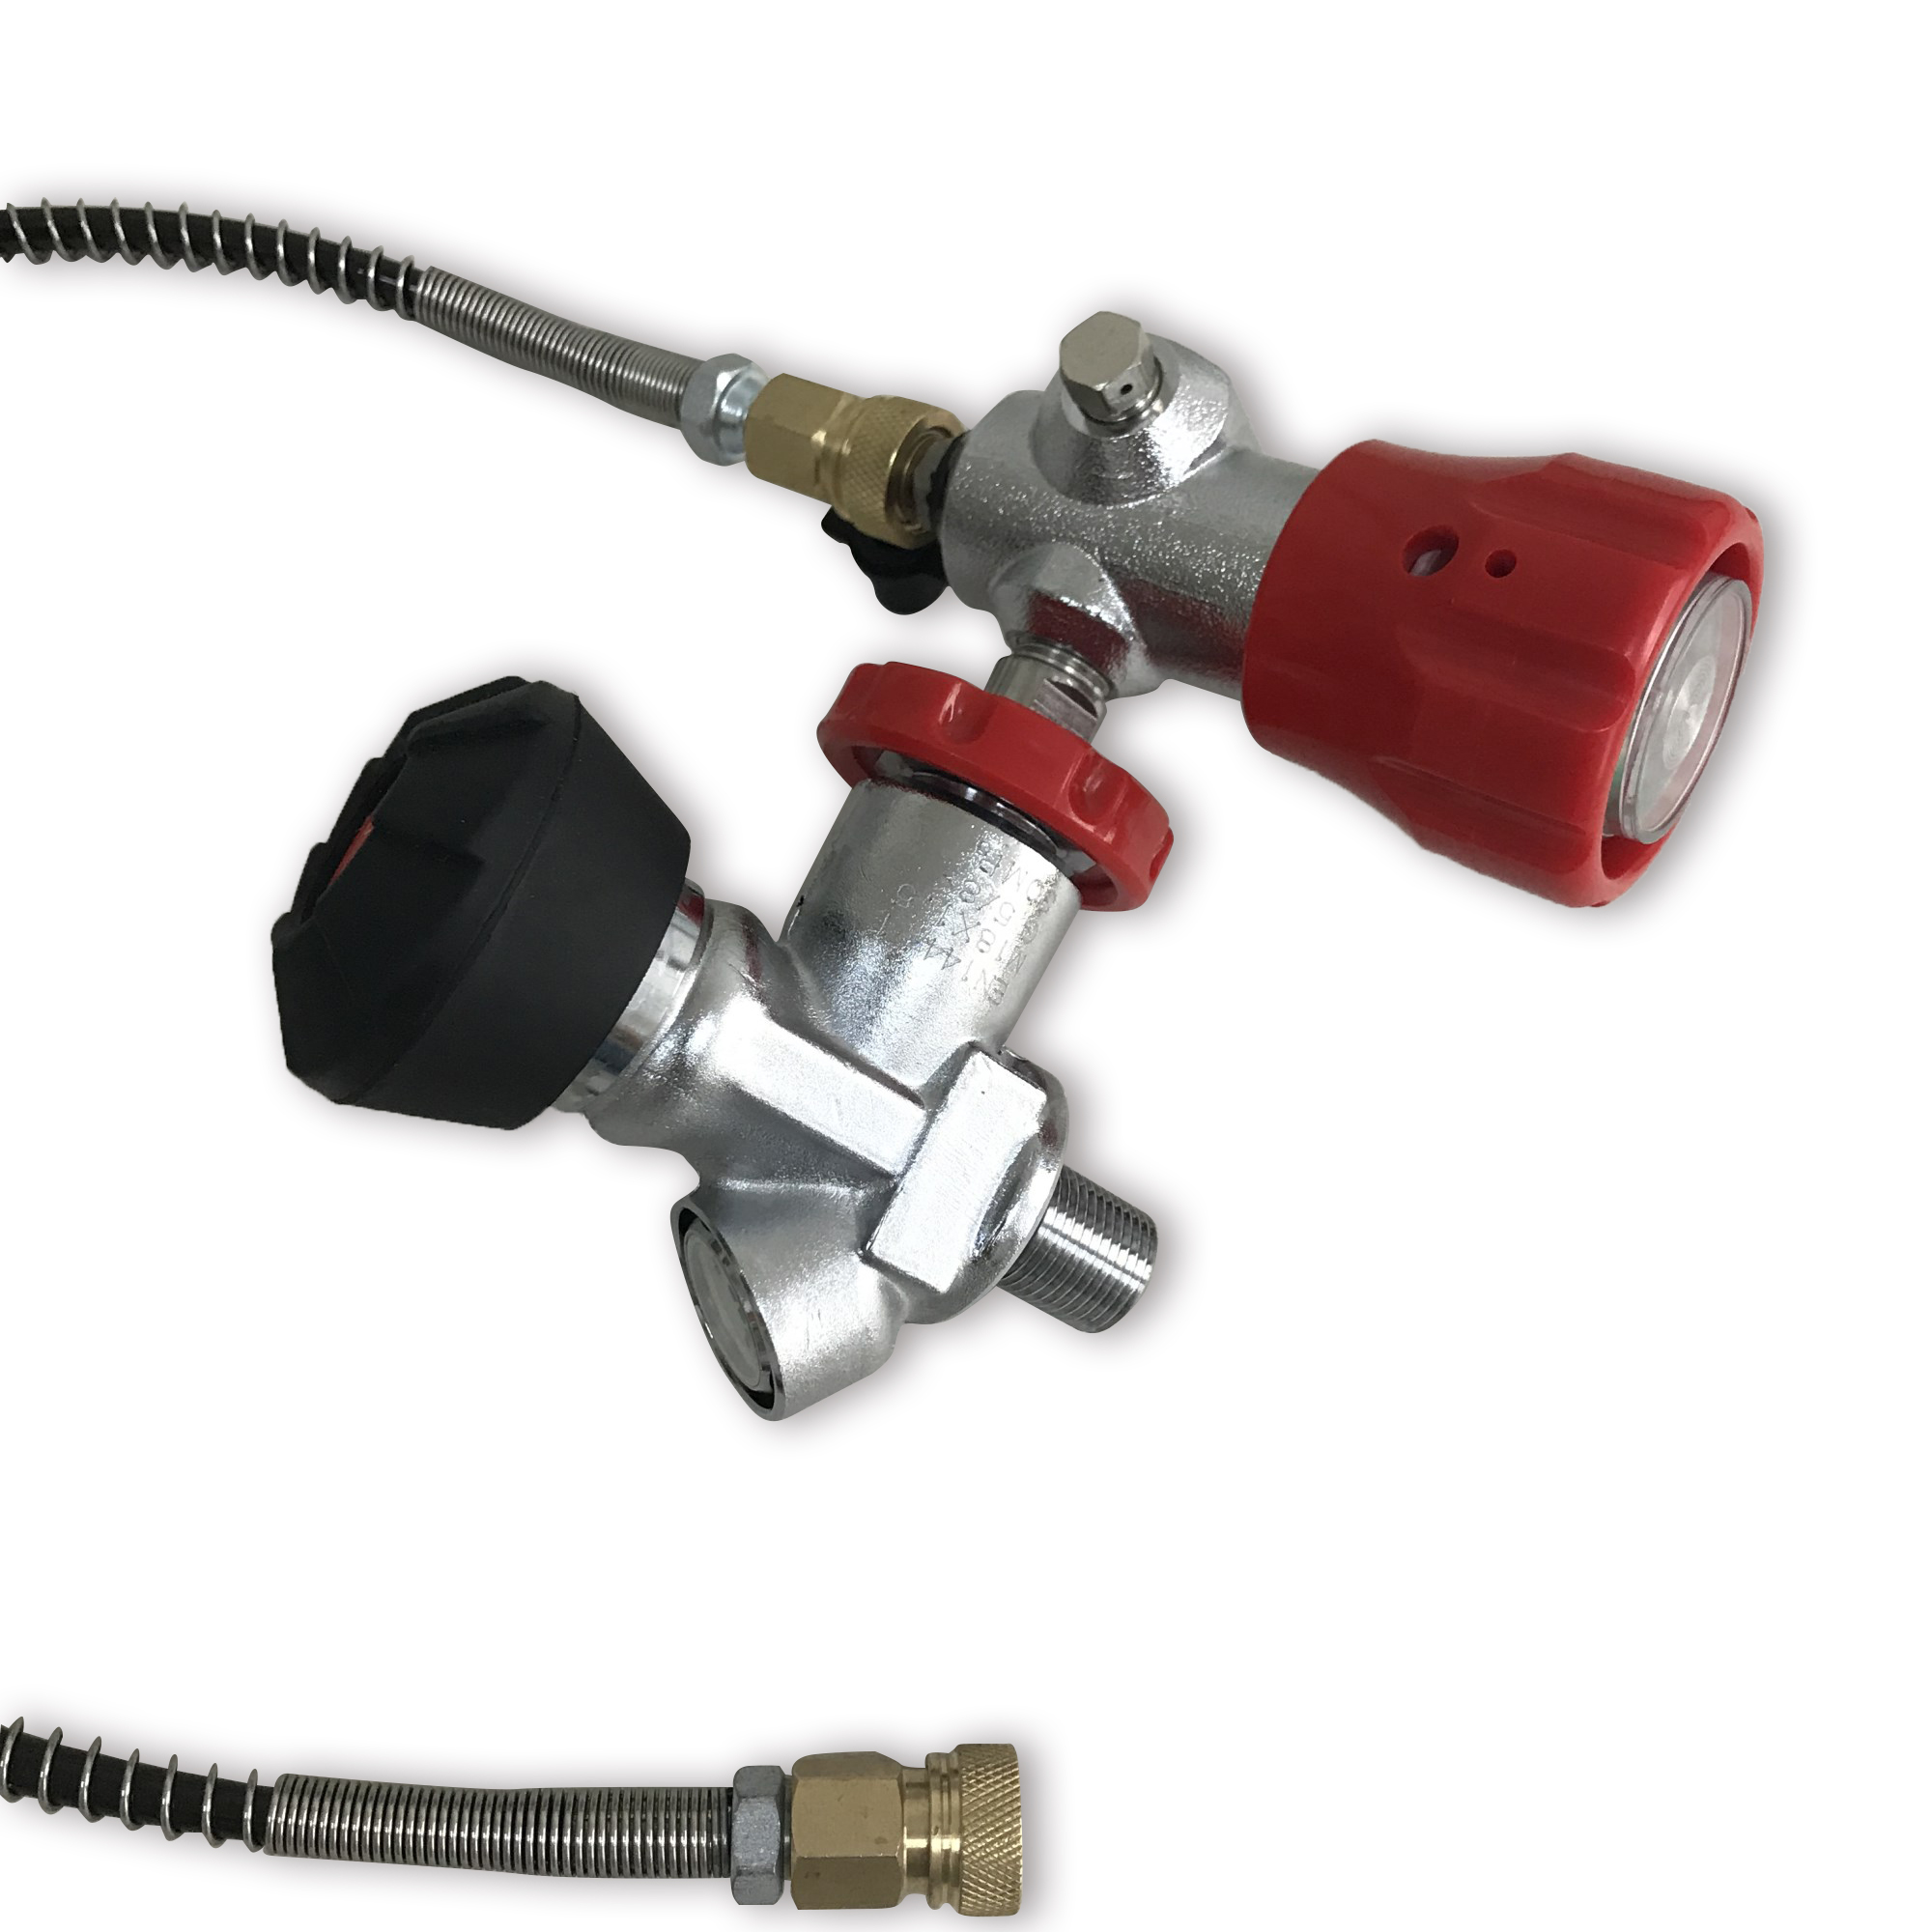 AC201 Pcp Gauge Valve For Scuba Diving Tank 4500psi And Filling Station With 50cm Hose For Pcp Air Rifle Compressed Cylinder